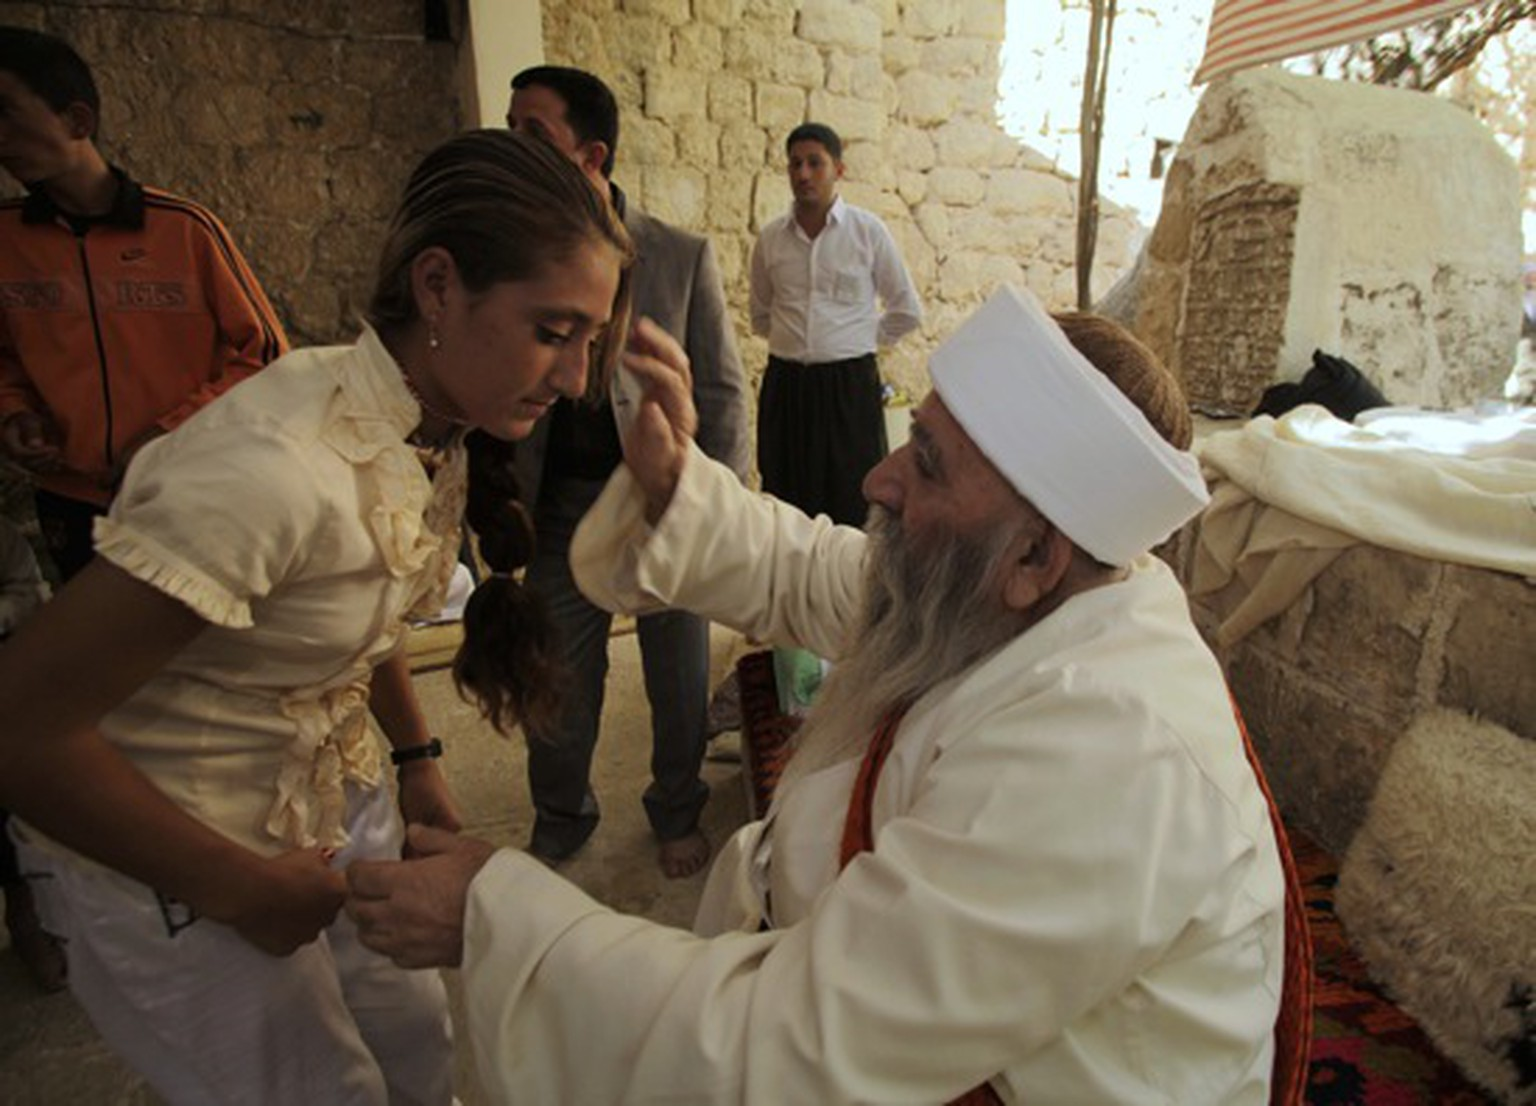 A Yazidi religious leader blesses a worshipper during the community's main festival of Eid al-Jamma, which lasts for a week, at Lalish temple in a small mountain valley situated northwest of Mosul, 390 km (240 miles) north of Baghdad October 7, 2010. Yazidis are members of a pre-Islamic Kurdish sect who live in northern Iraq and Syria. The community was a target for the deadliest militant attacks in Iraq since 2003 when suicide truck bombings killed more than 400 Yazidi people in August 2007. Picture taken October 7, 2010.    REUTERS/Stringer (IRAQ - Tags: RELIGION SOCIETY)